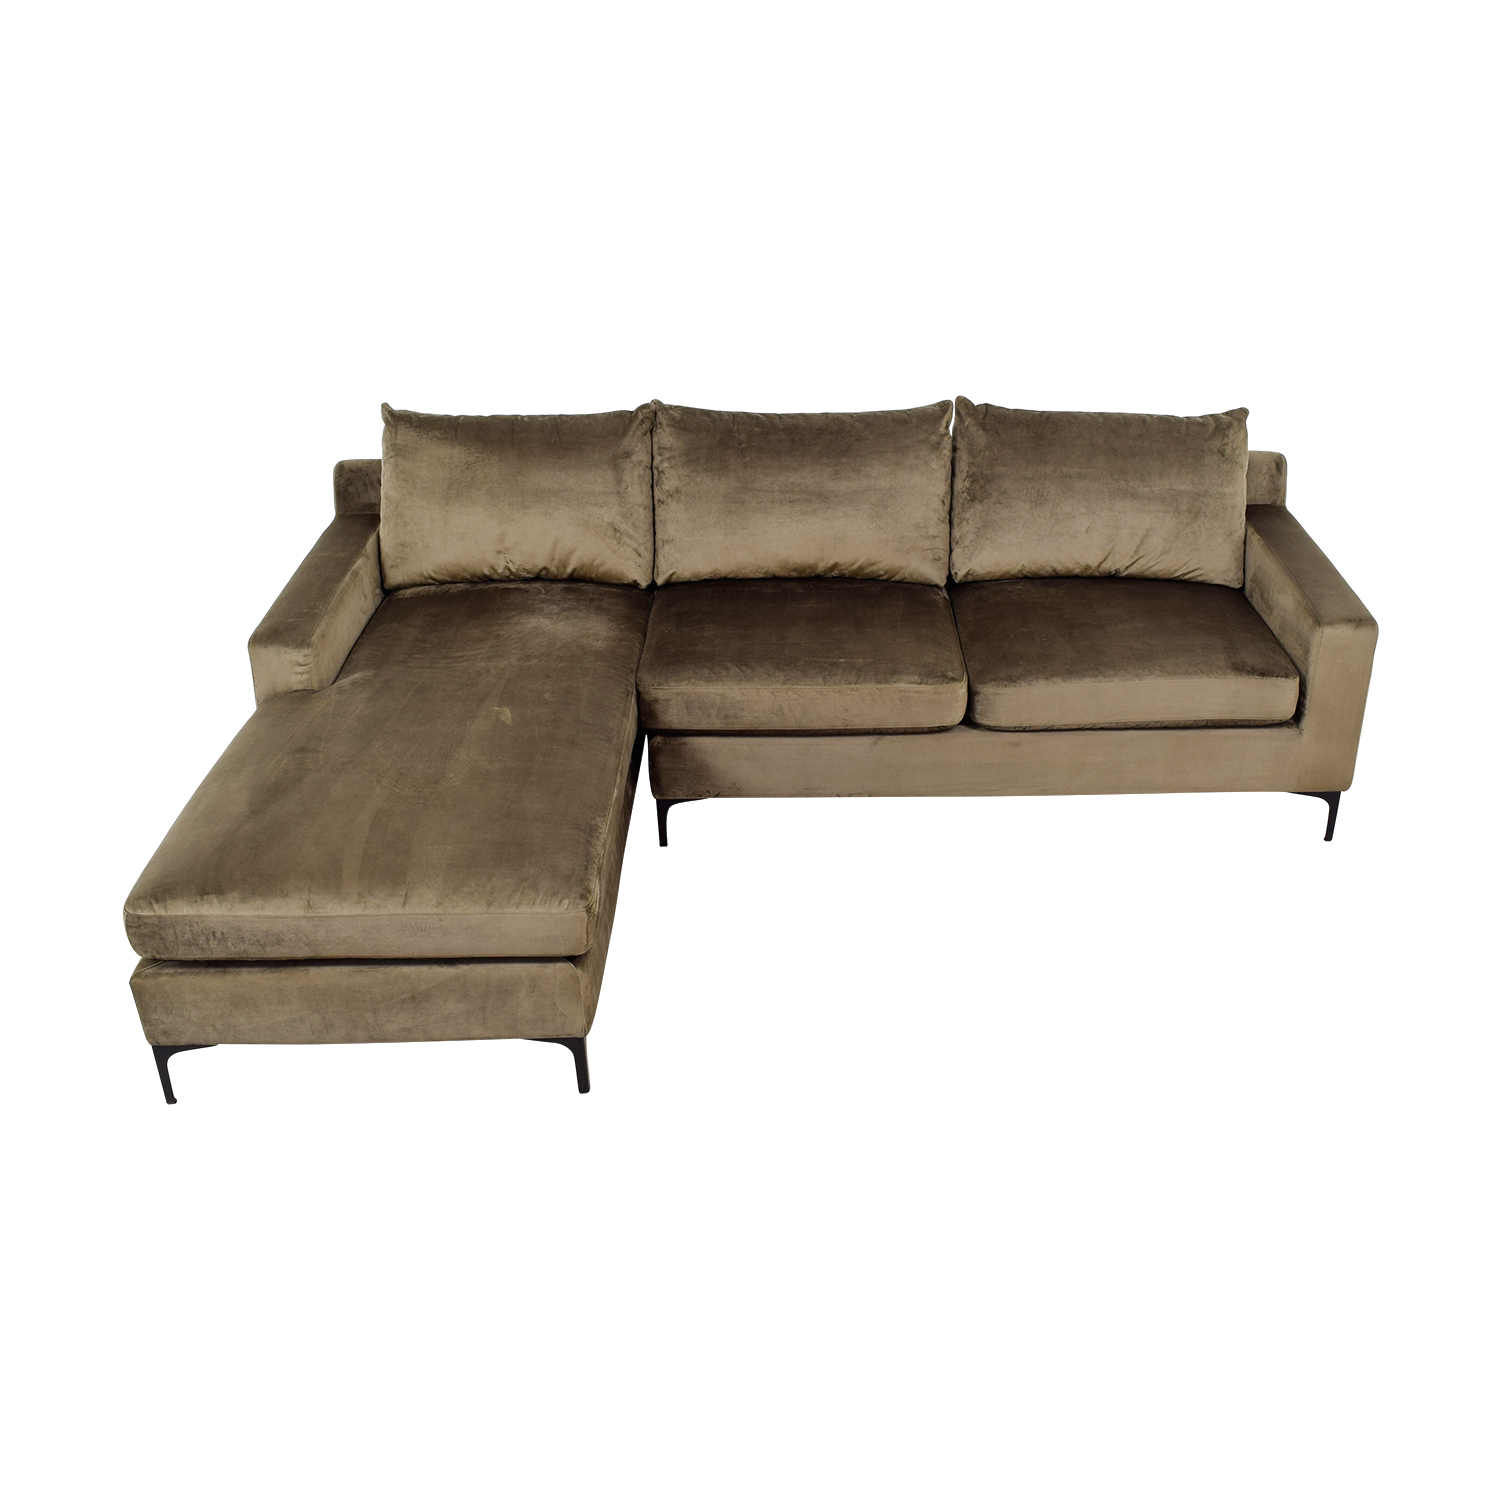 Sloan Mod Velvet Quartz Extended Chaise Sectional nyc